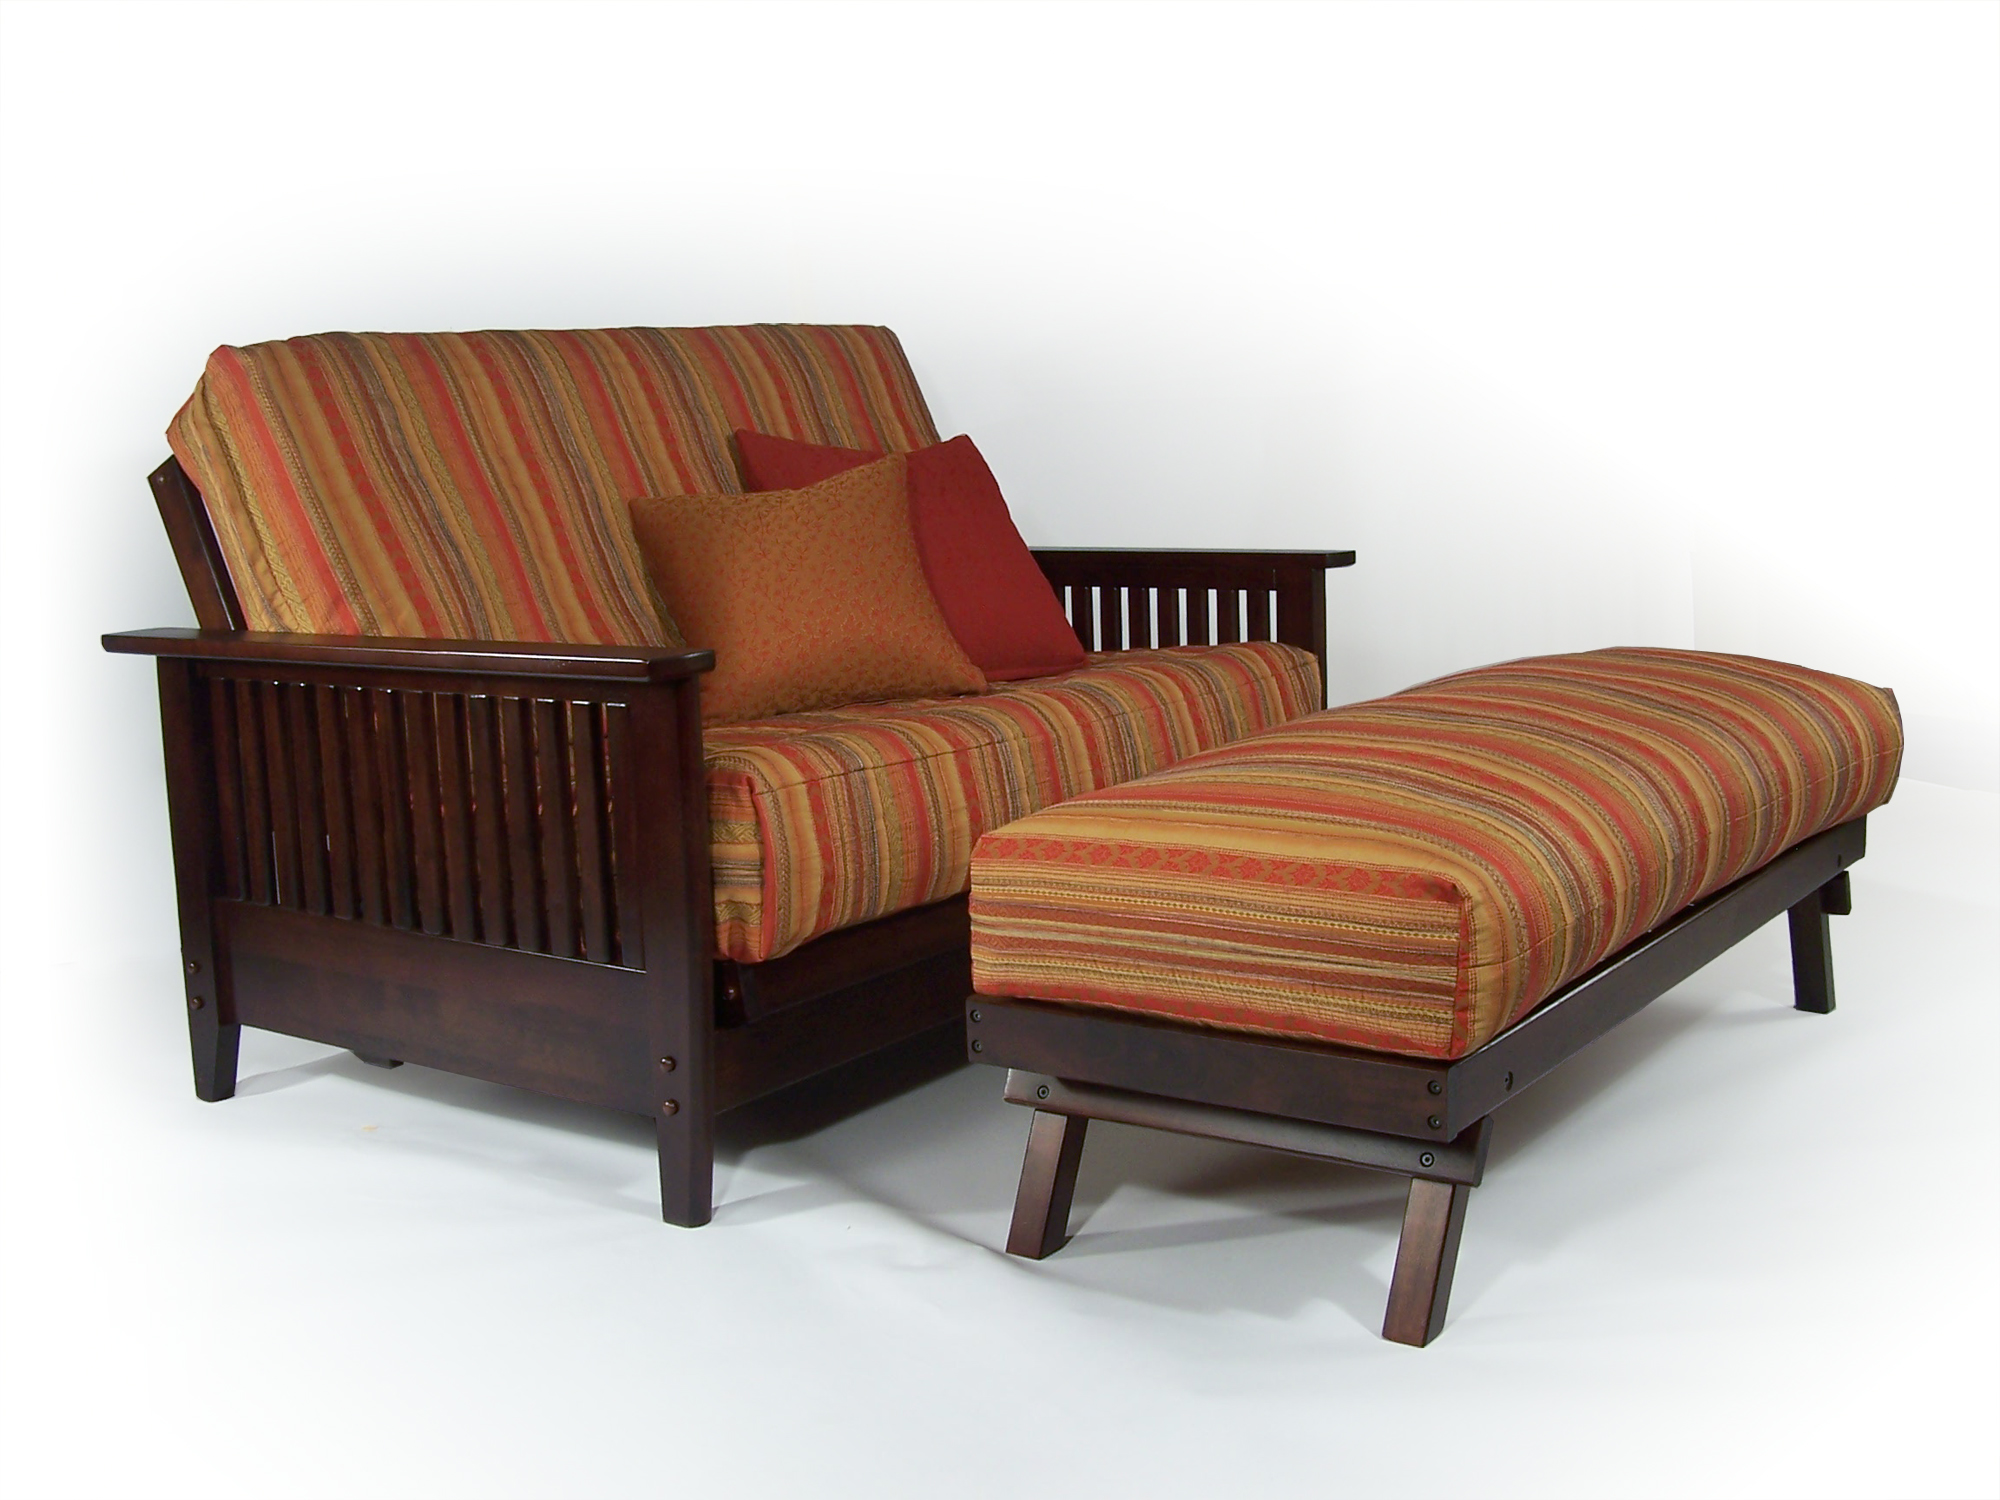 wood seats love hardwood loveseat the chair mattress frame futon beds lifestyle frames